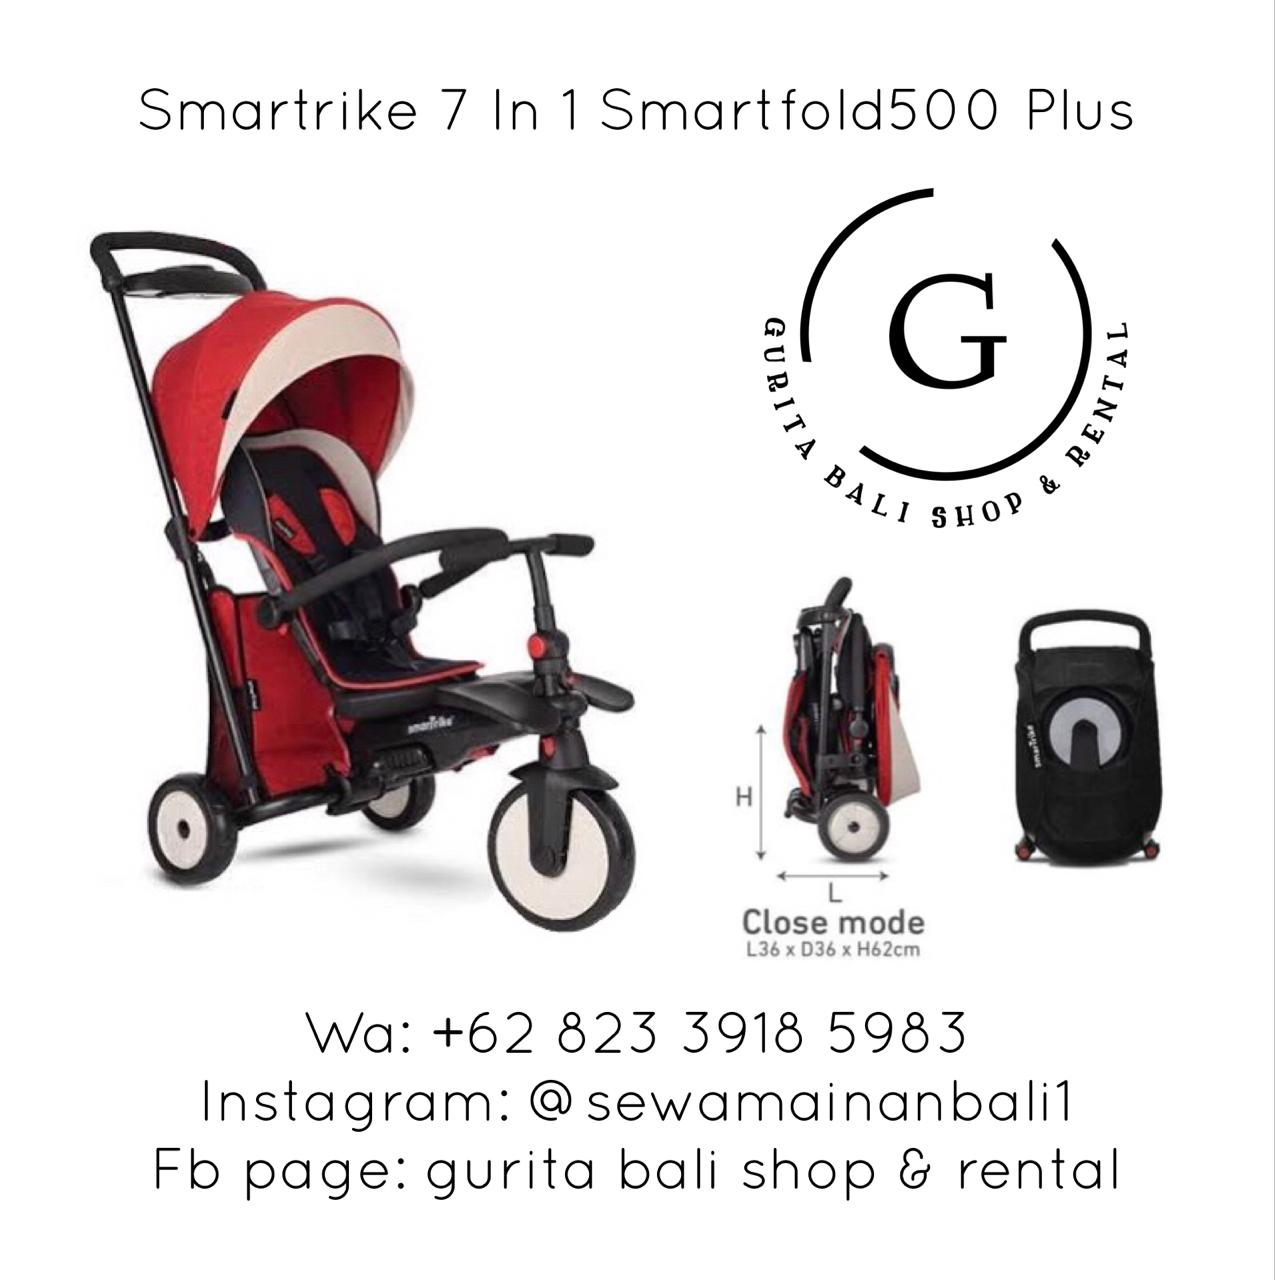 SMARTRIKE 7 IN 1 SMARTFOLD 500 PLUS